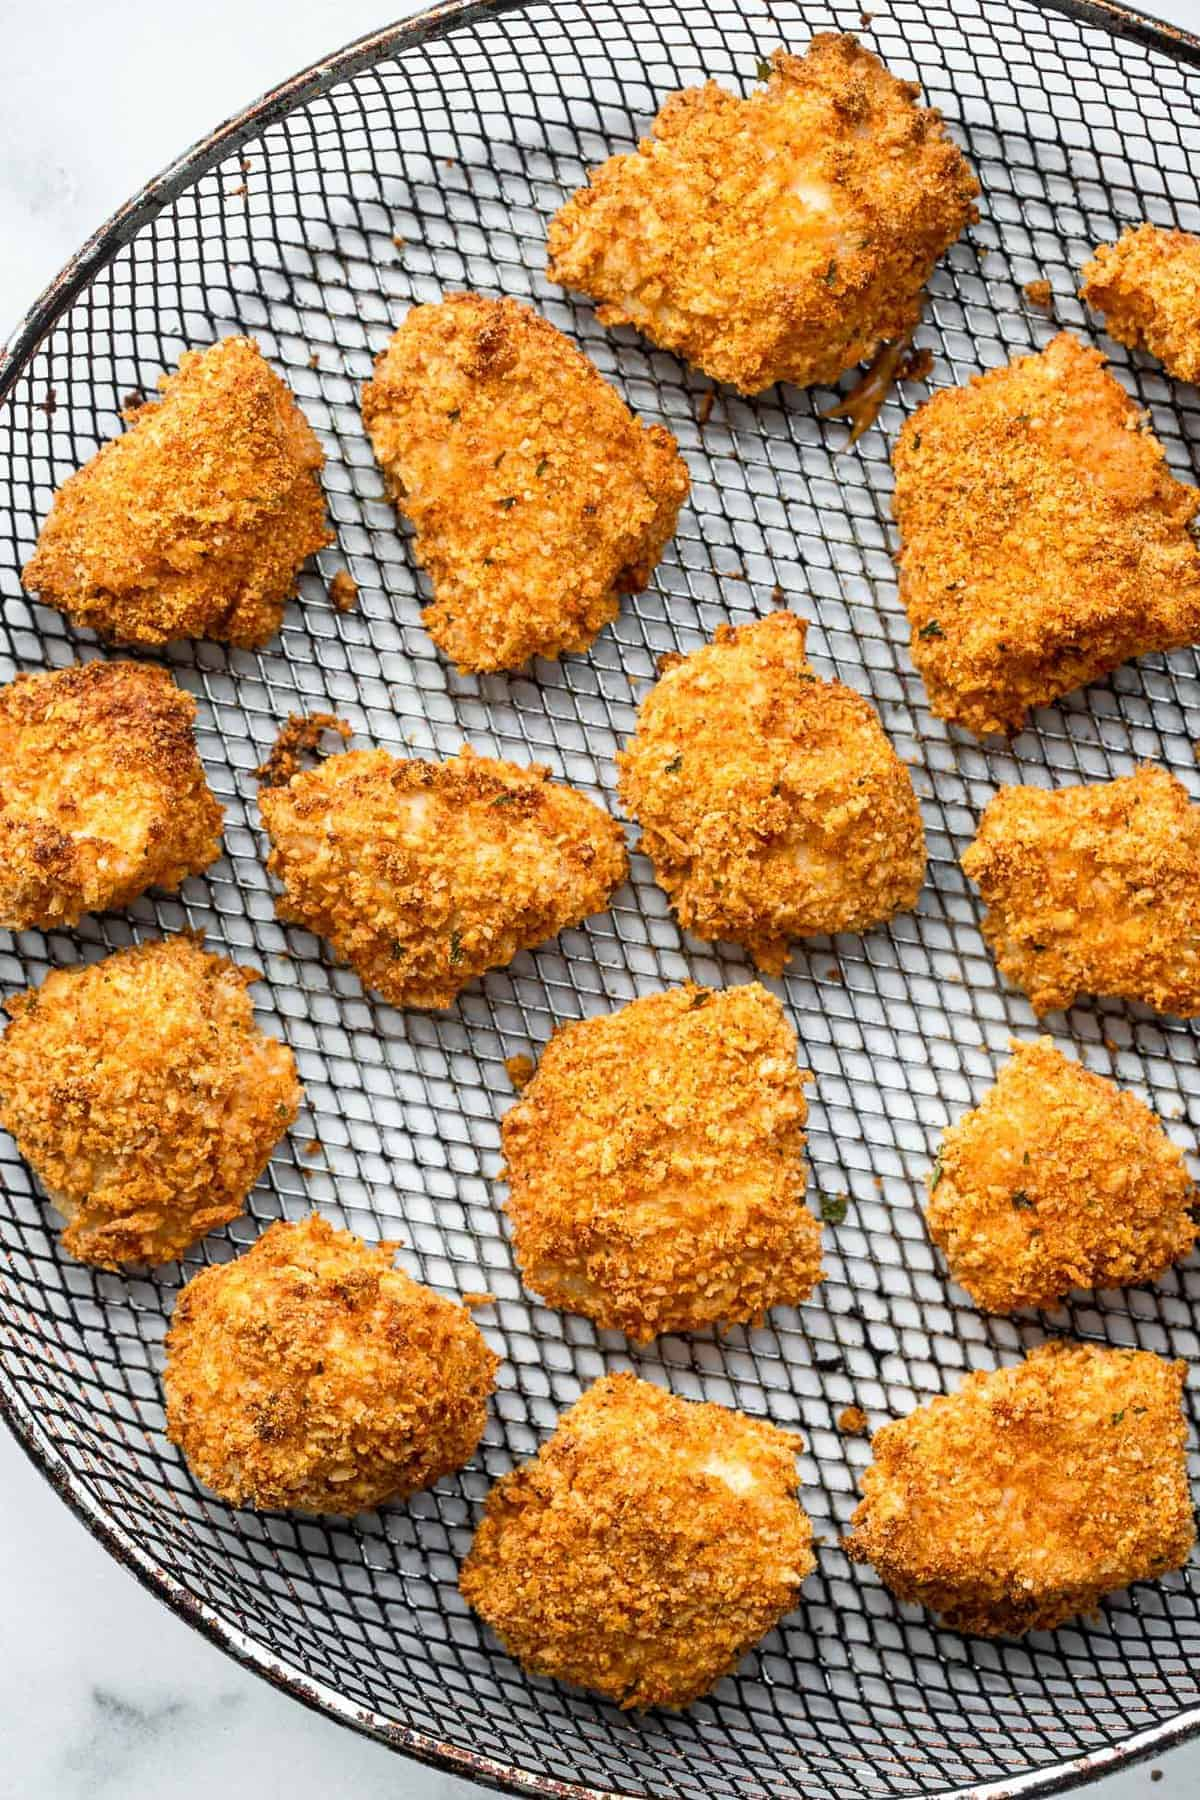 Air fryer chicken nuggets arranged on a backing rack